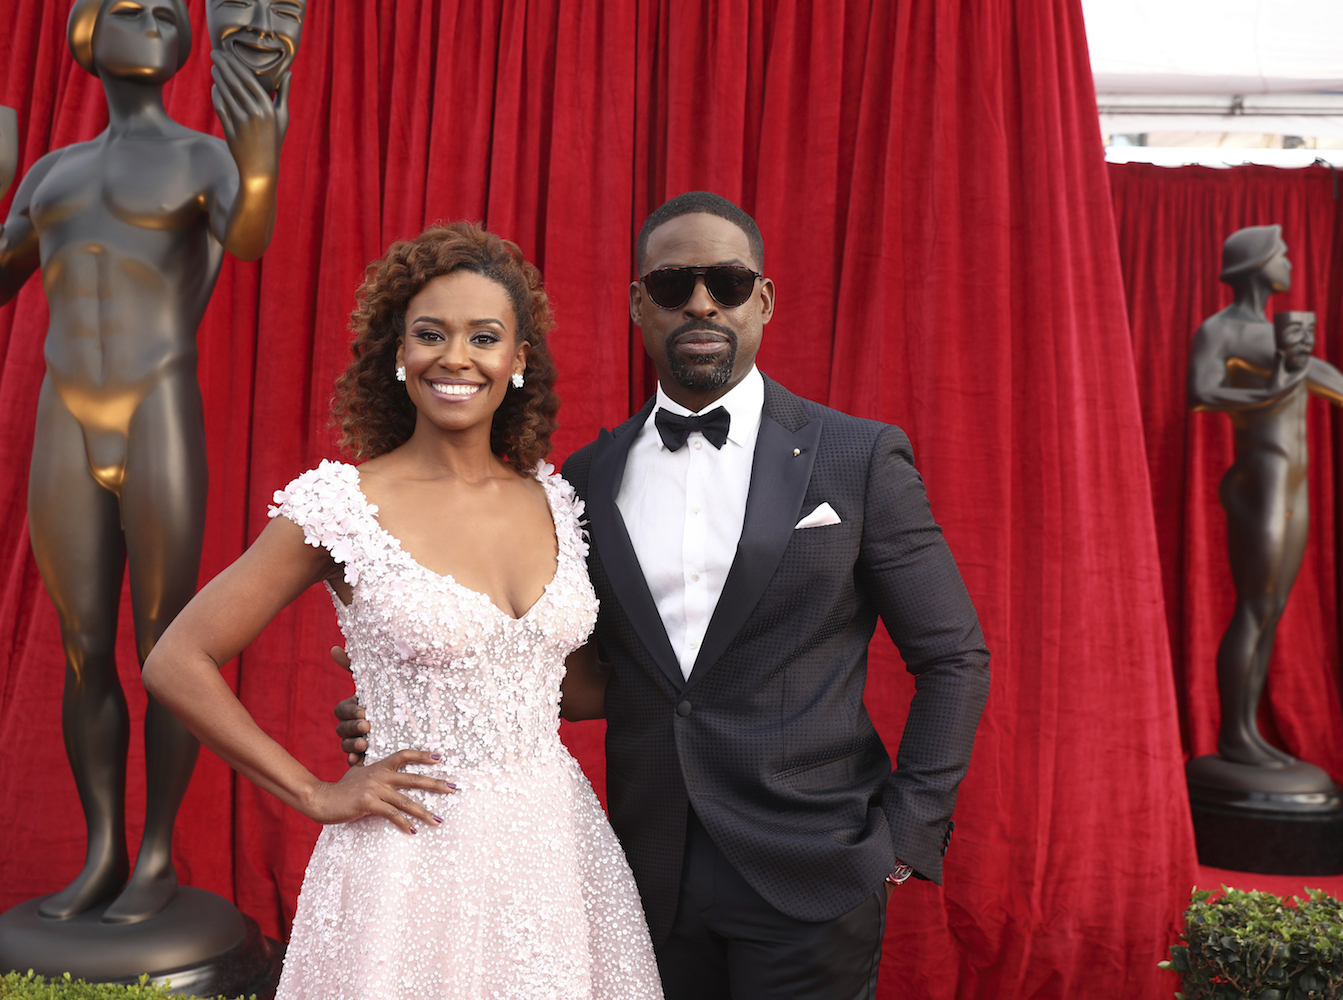 <div class='meta'><div class='origin-logo' data-origin='AP'></div><span class='caption-text' data-credit='Matt Sayles/Invision/AP'>Sterling K. Brown, right, and Ryan Michelle Bathe arrive at the 24th annual Screen Actors Guild Awards at the Shrine Auditorium.</span></div>